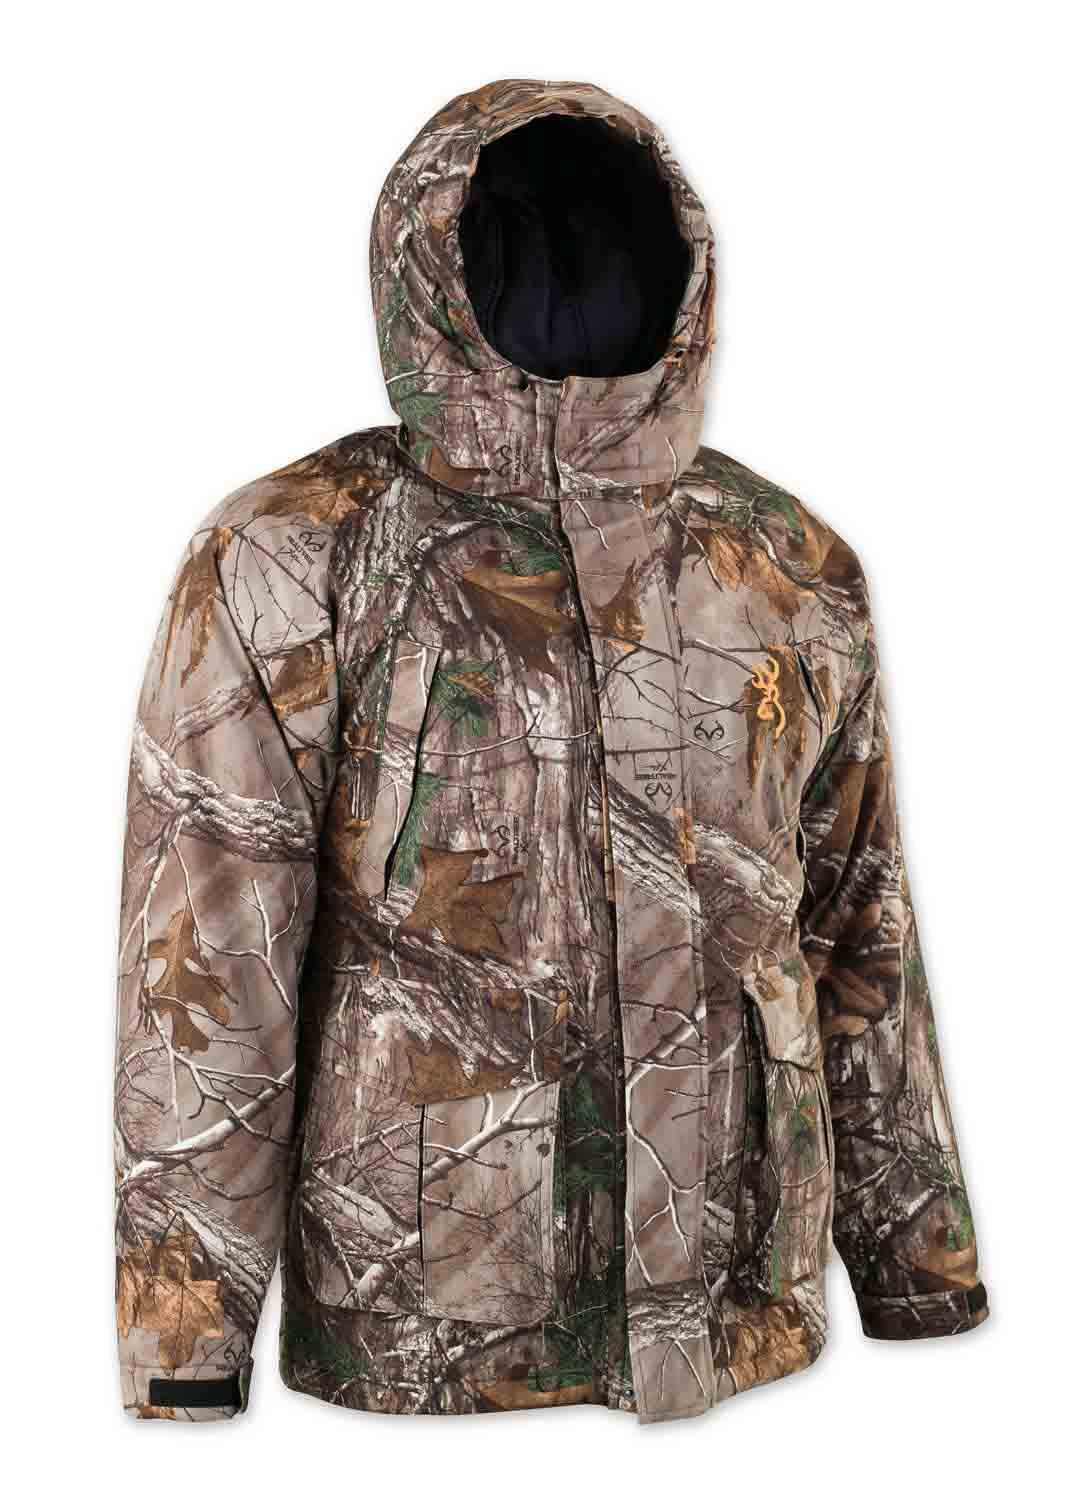 Browning Wasatch Insulated Rain Parka in Realtree Xtra